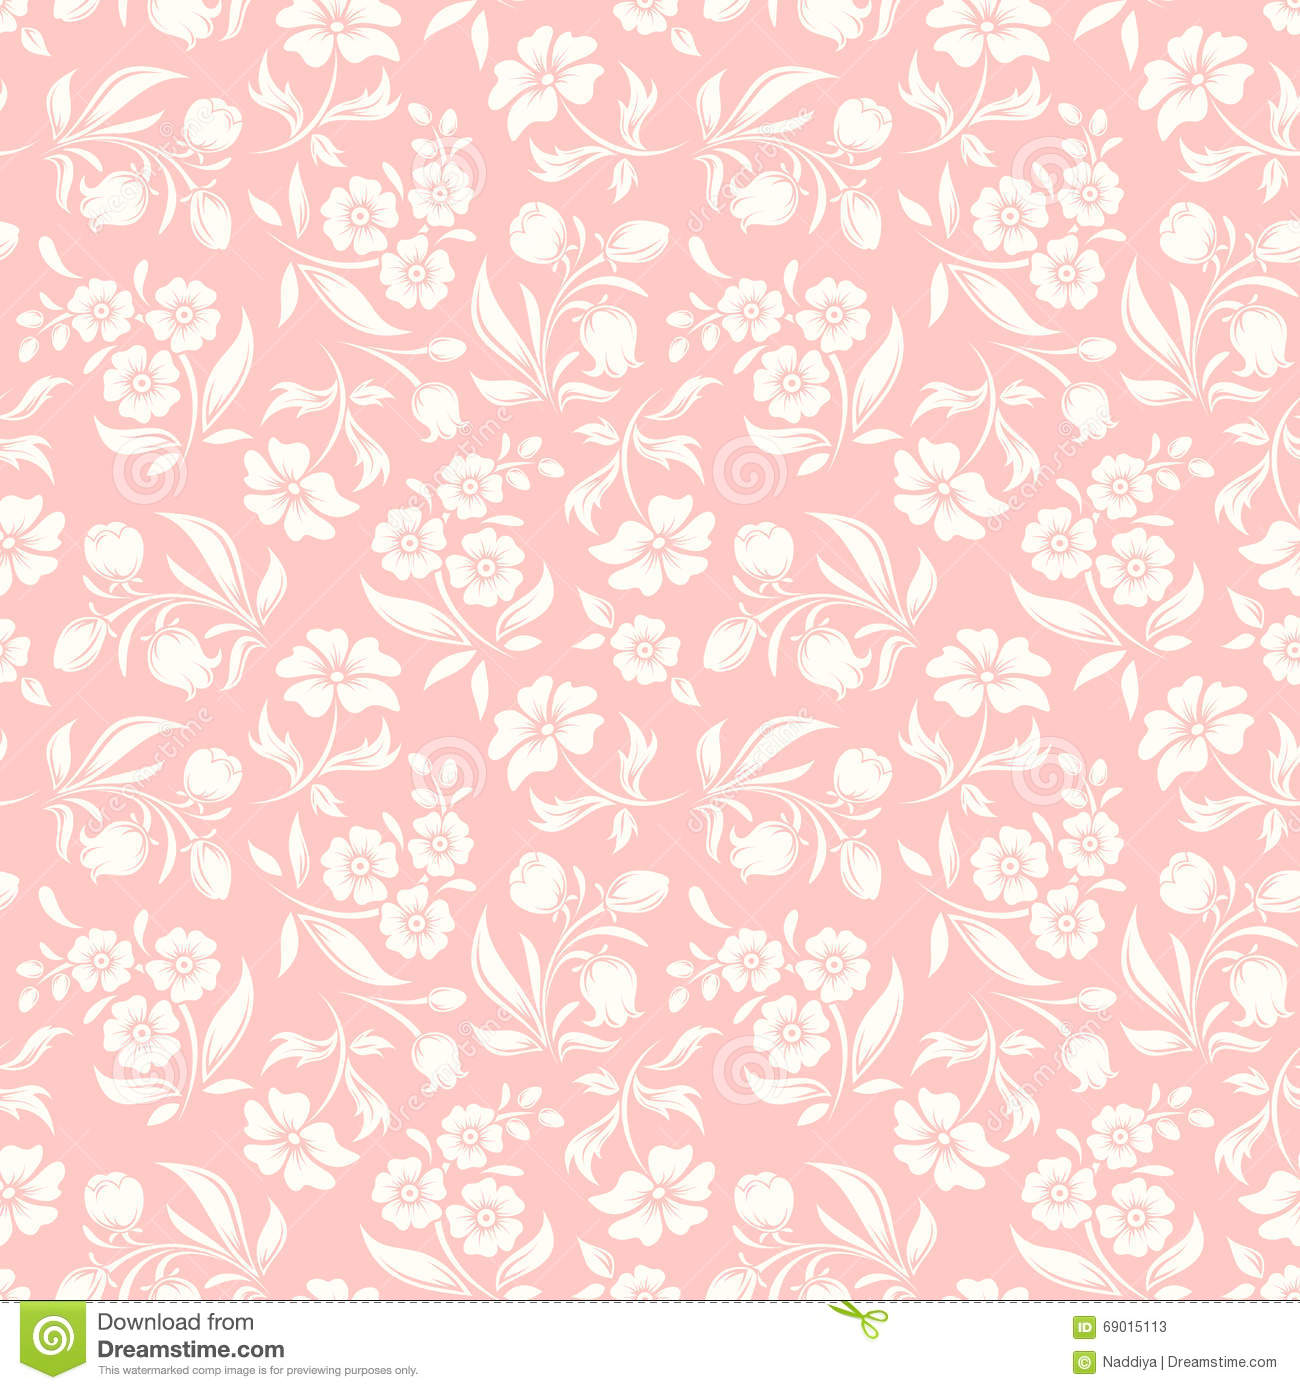 Seamless pink floral pattern - photo#42